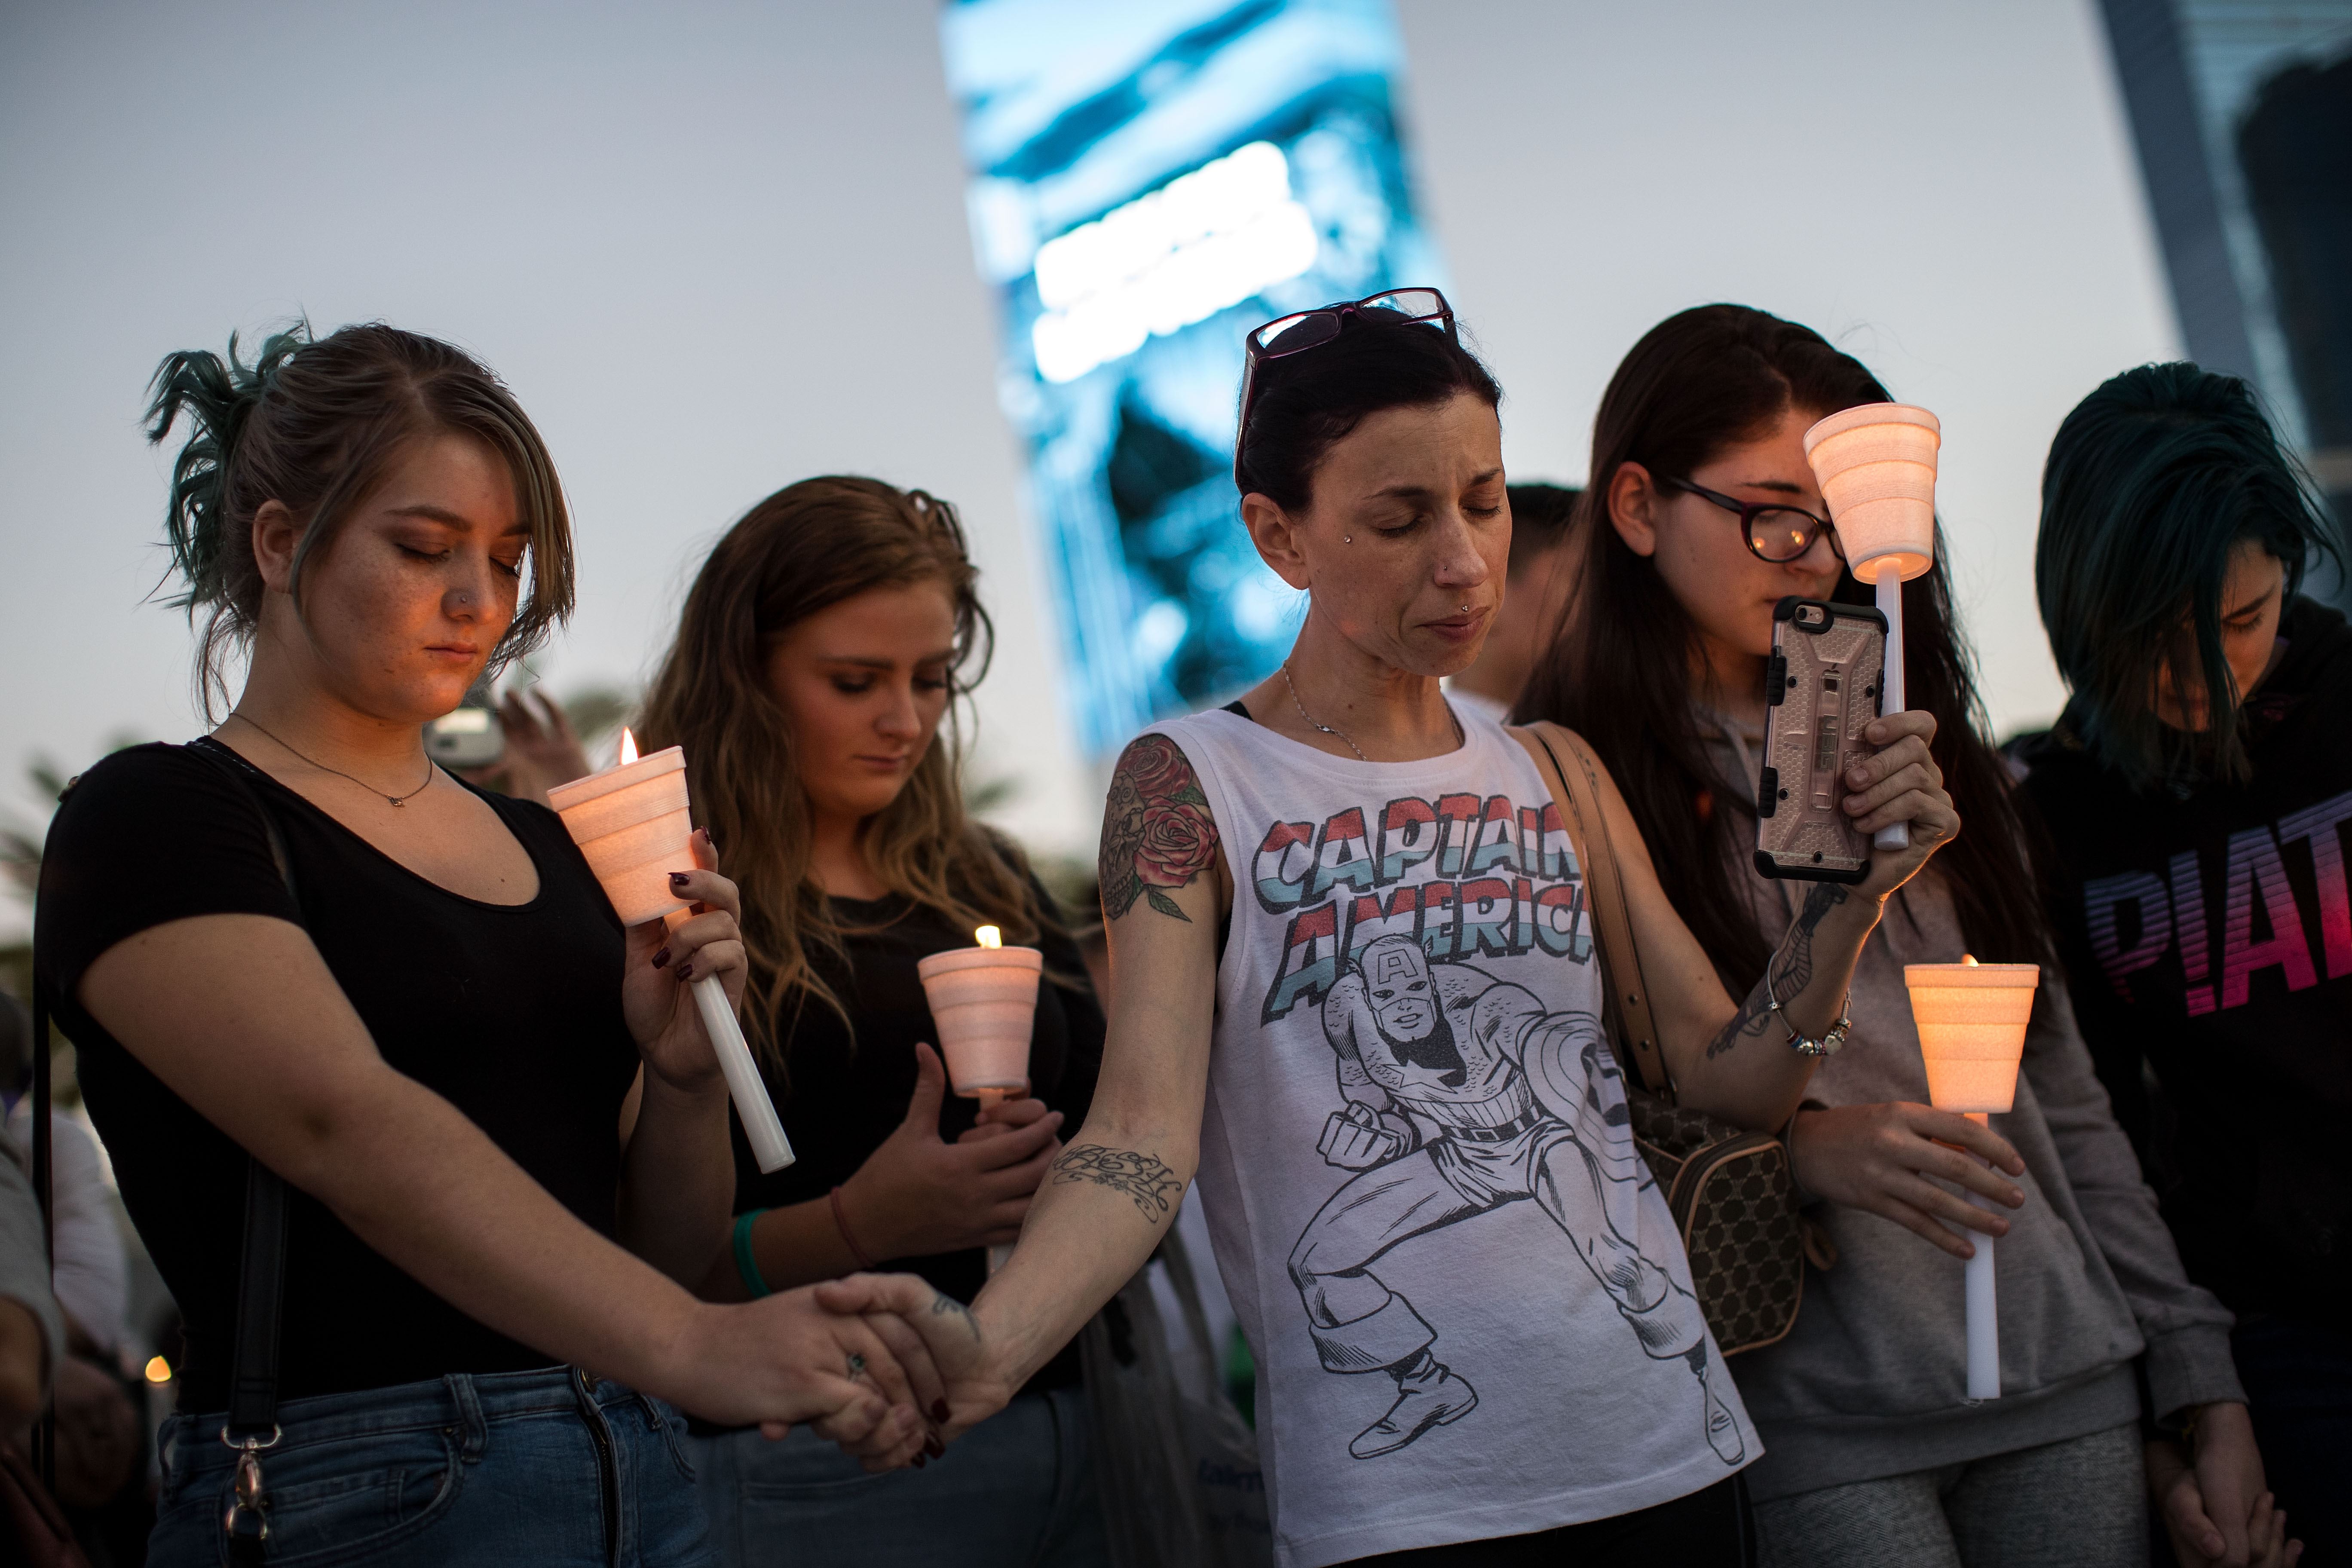 Mourners attend a candlelight vigil at the corner of Sahara Avenue and Las Vegas Boulevard  for the victims of Sunday night's mass shooting, October 2, 2017 in Las Vegas, Nevada.